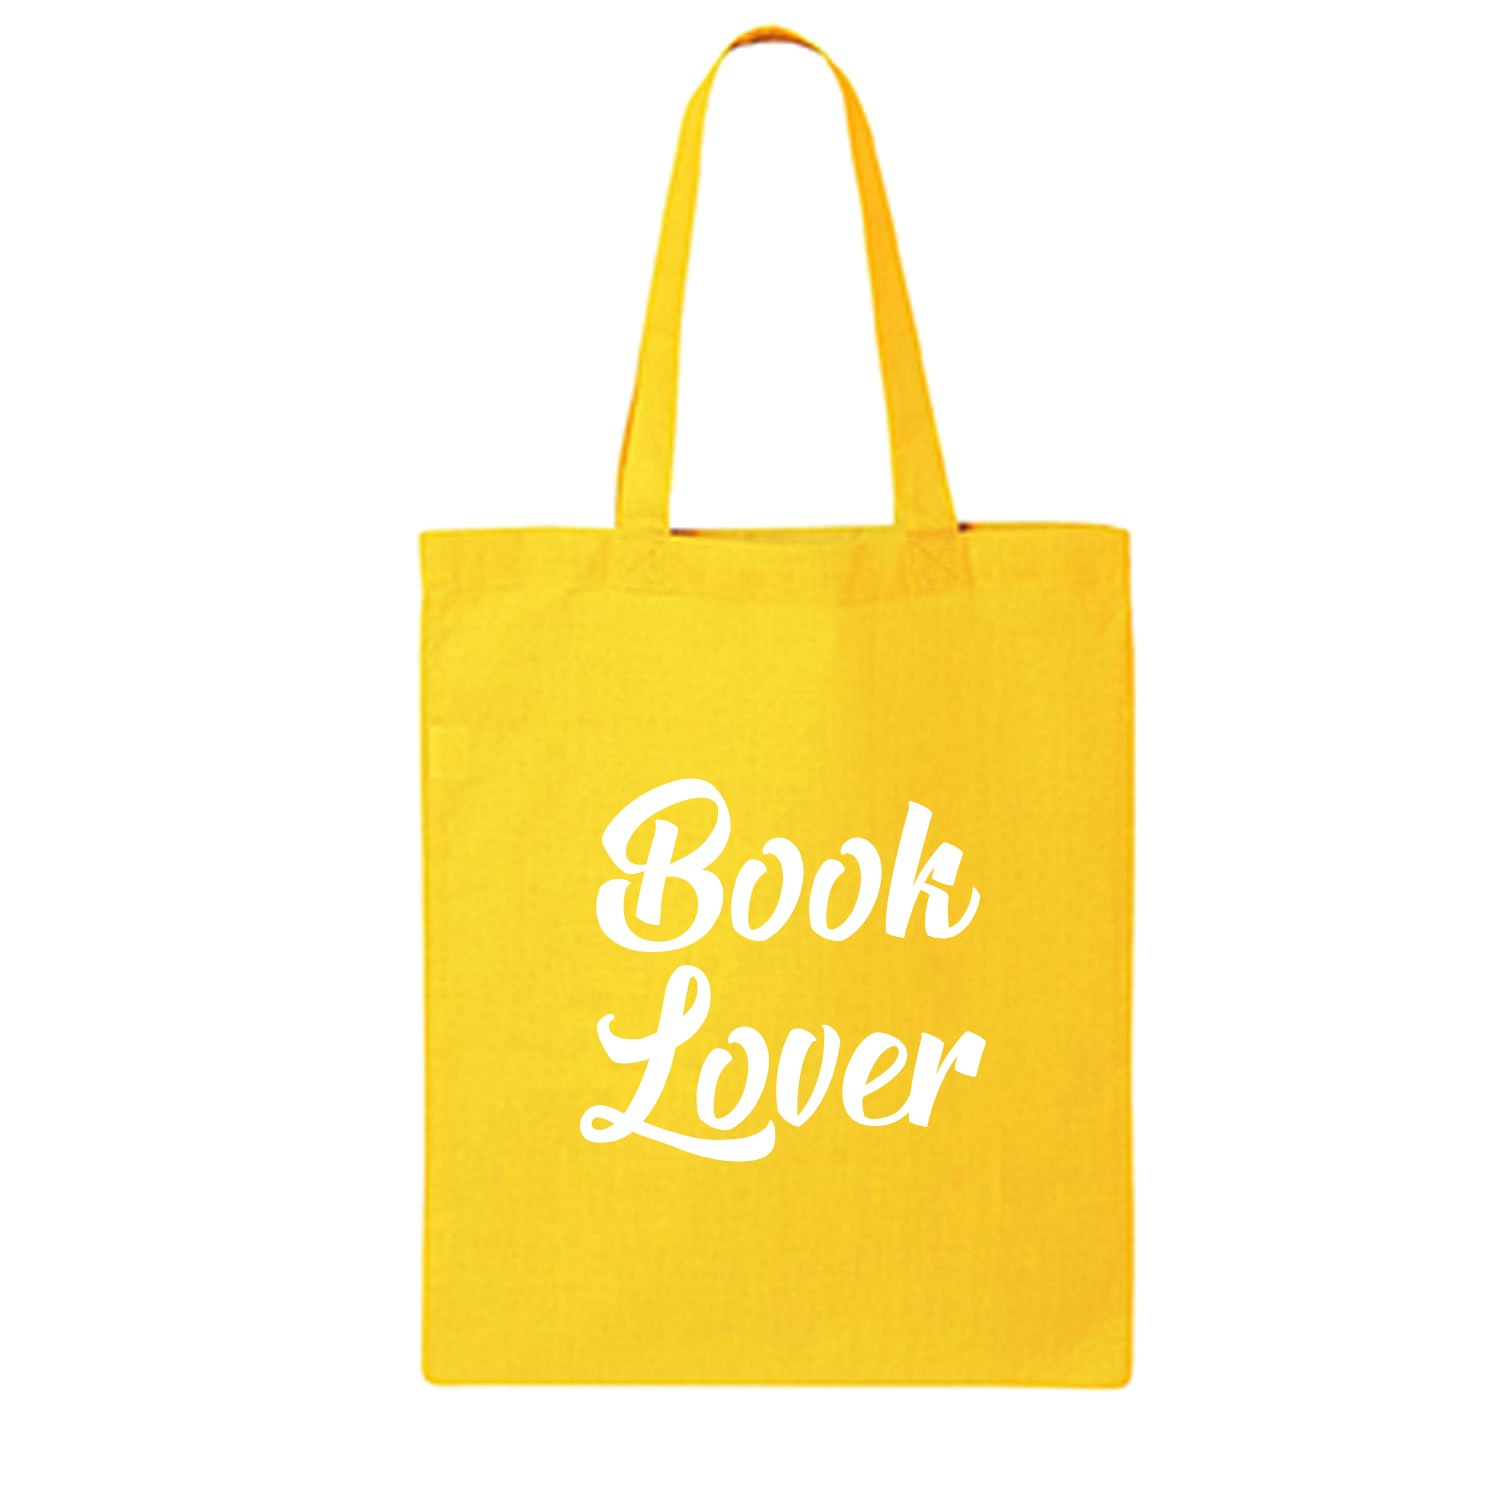 Book Lover Cotton Canvas Tote Bag in Yellow - One Size